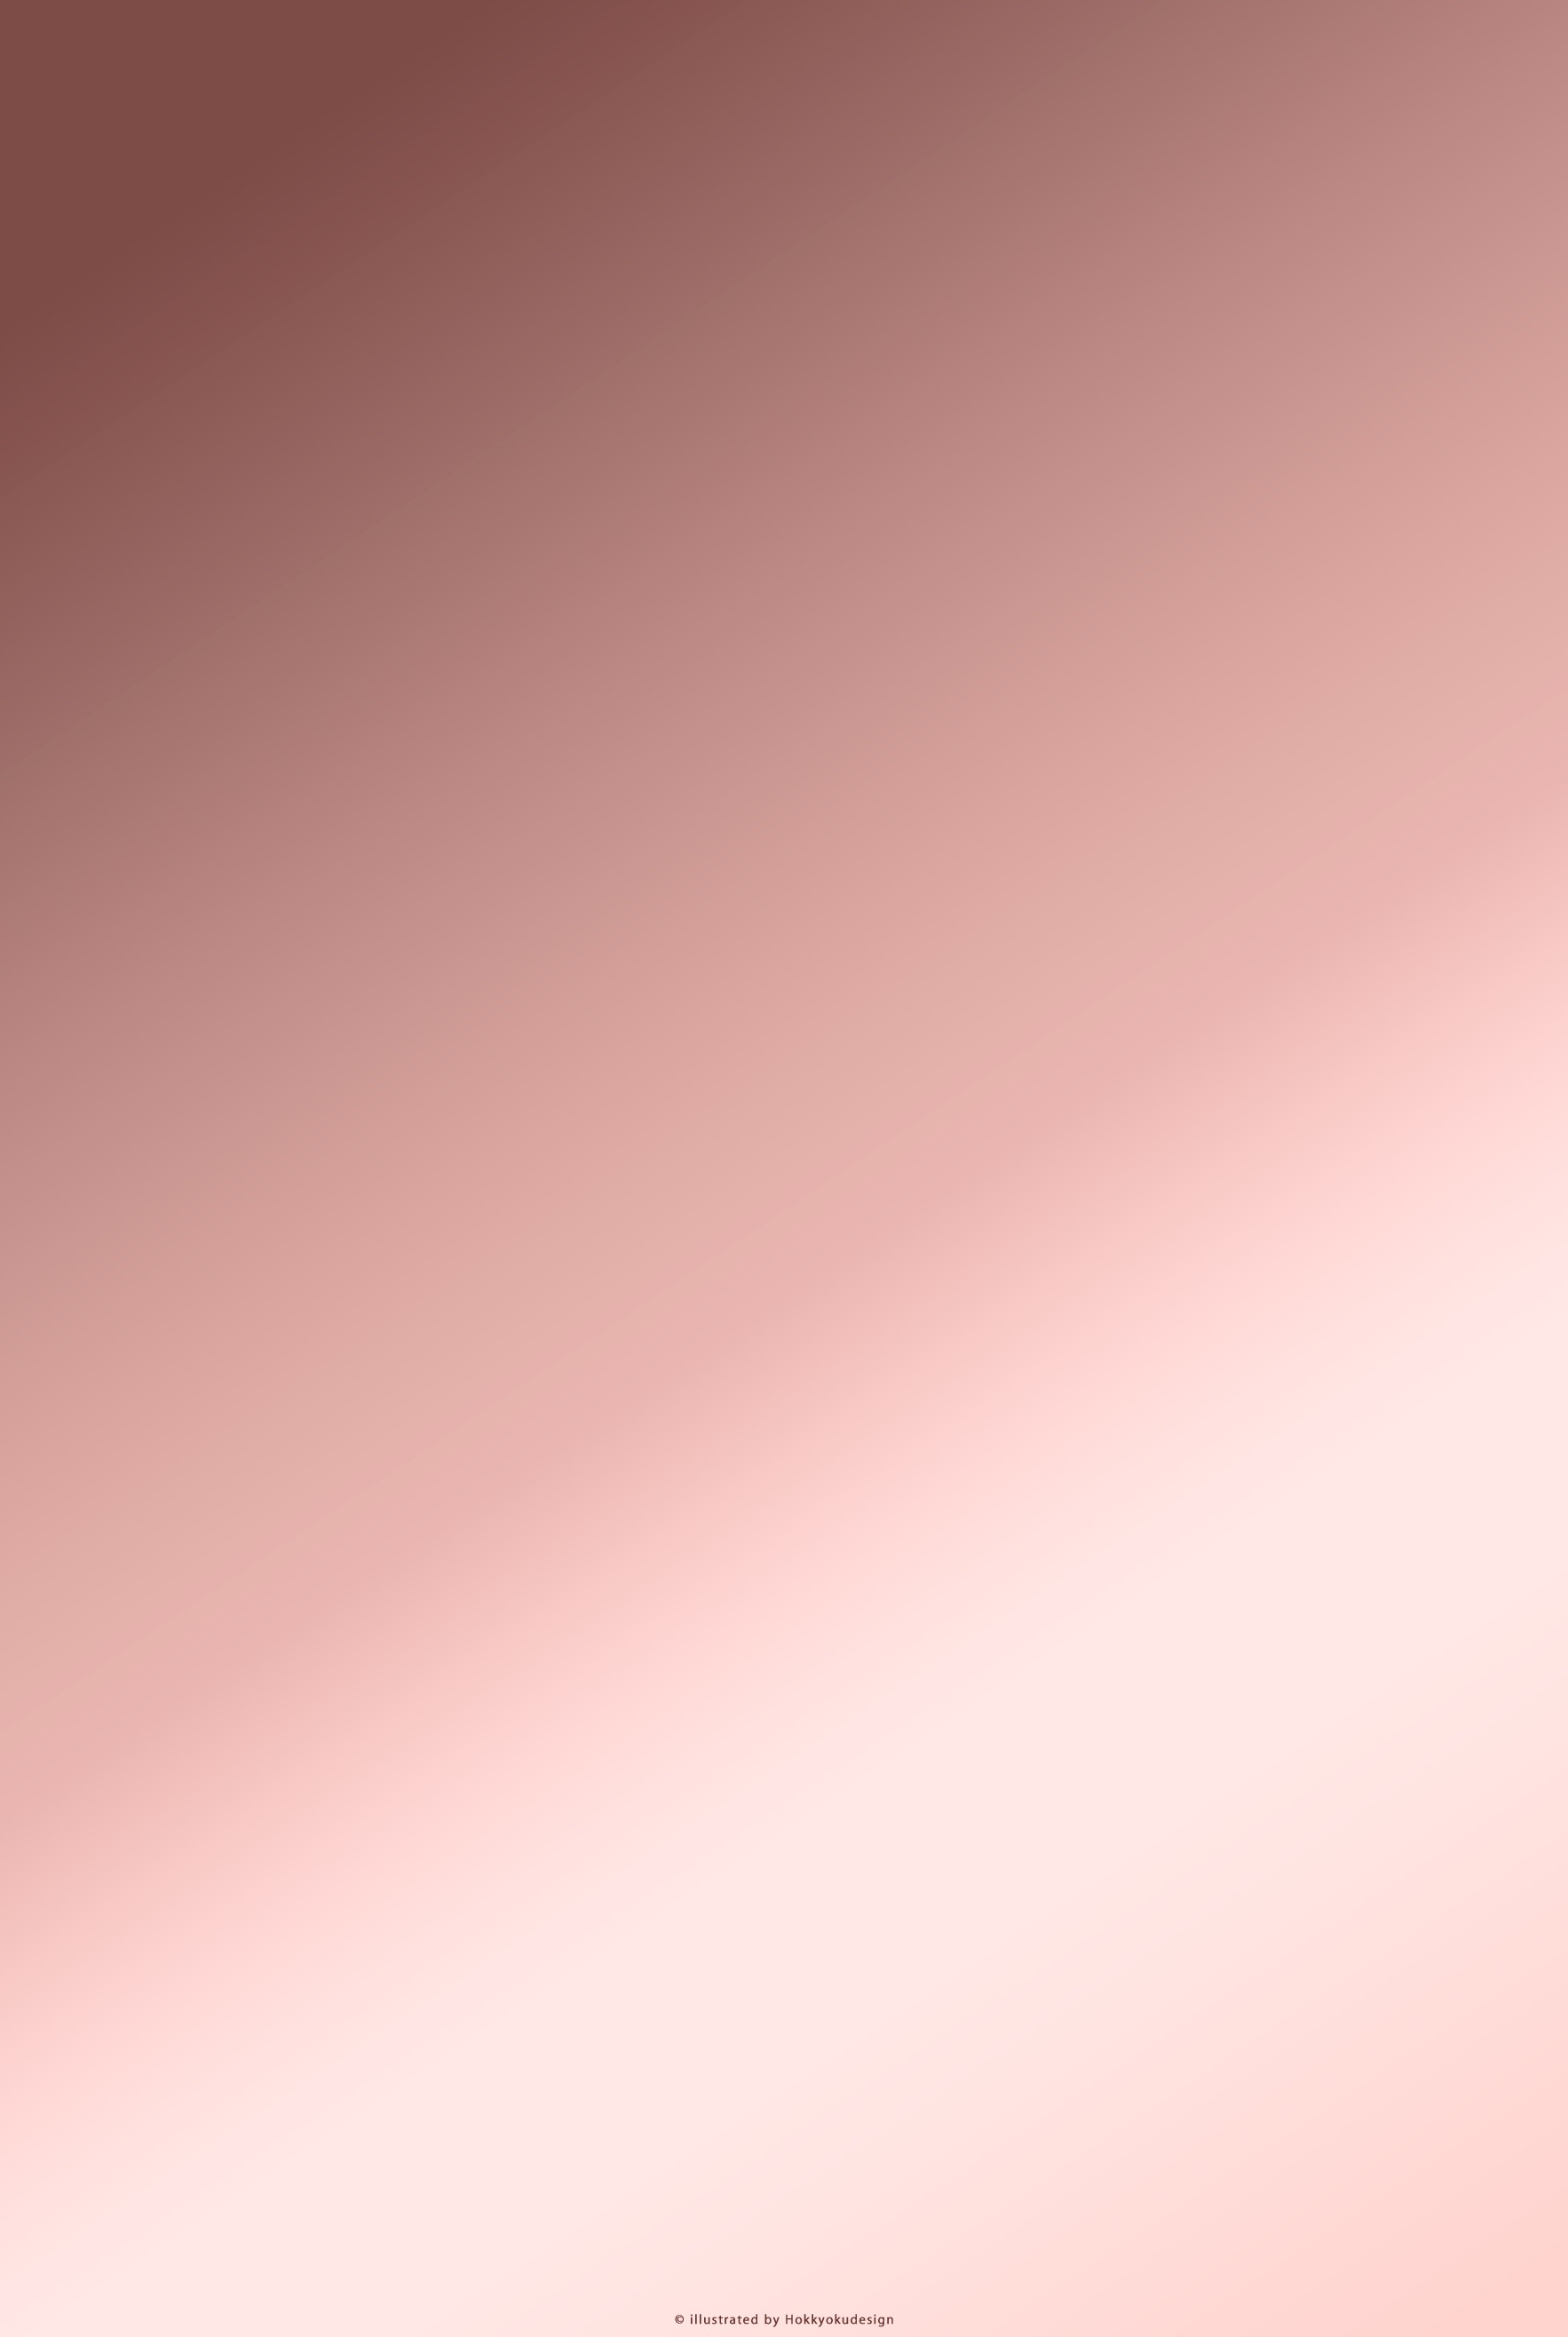 Rose gold wallpaper download free amazing full hd - Background rose gold ...